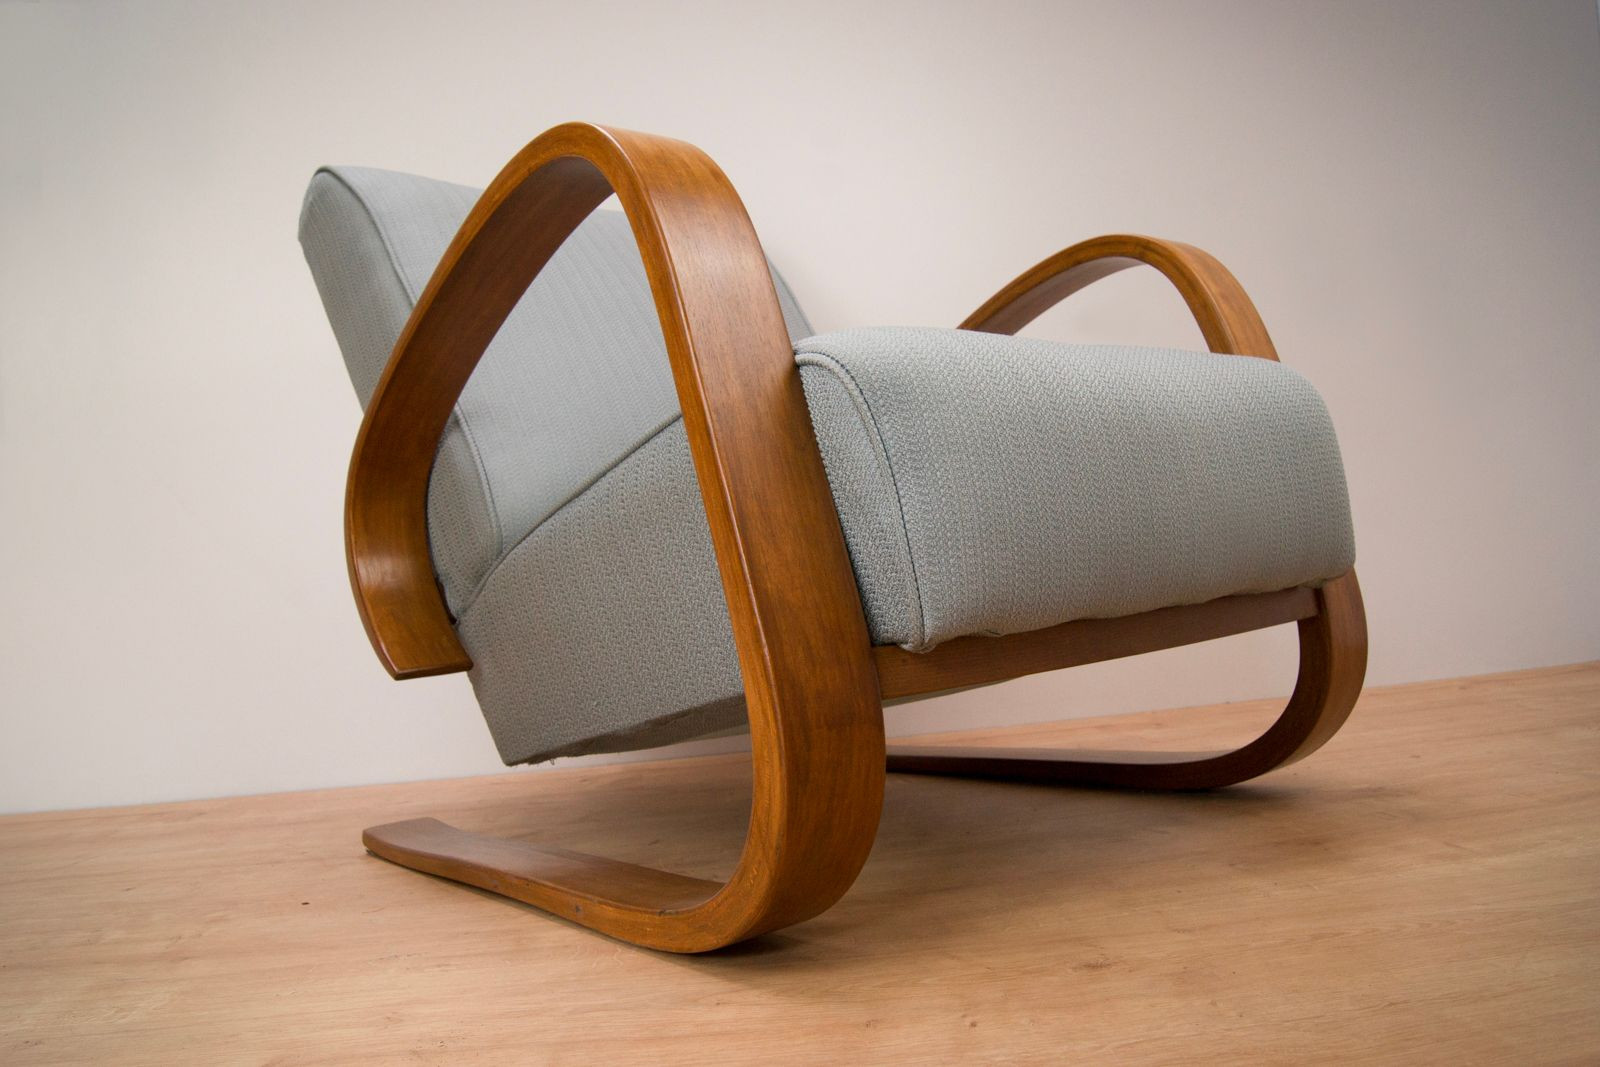 alvar aalto vase price of model 400 tank chair by alvar aalto for artek 1950s for sale at pamono within price 5467 00 regular price 5950 00